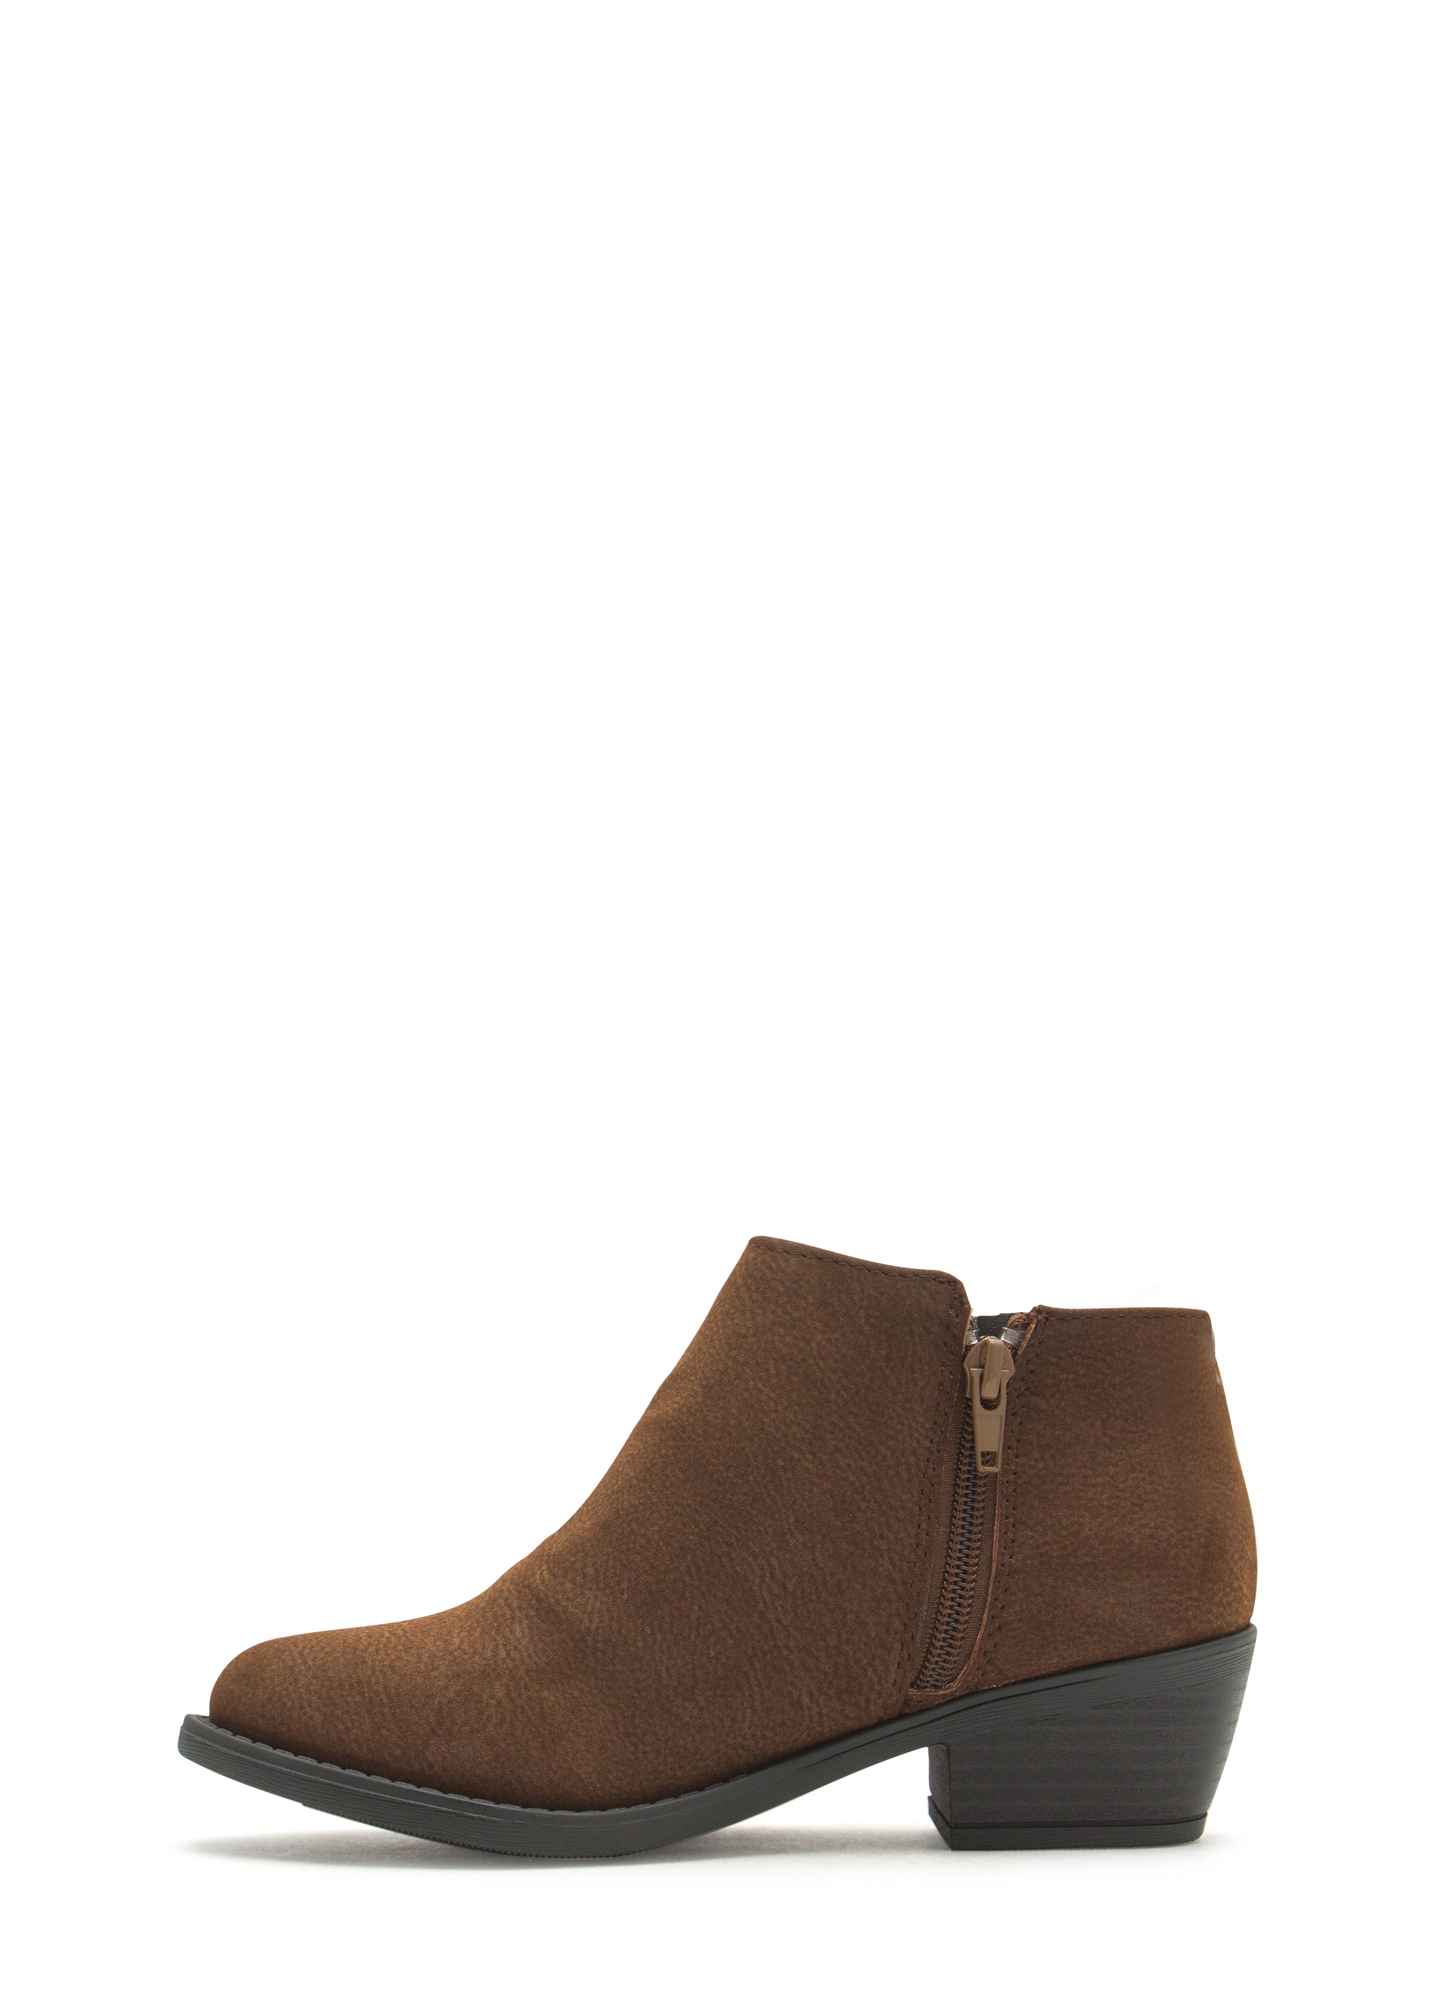 Perfect Basic Faux Leather Booties DKTAN